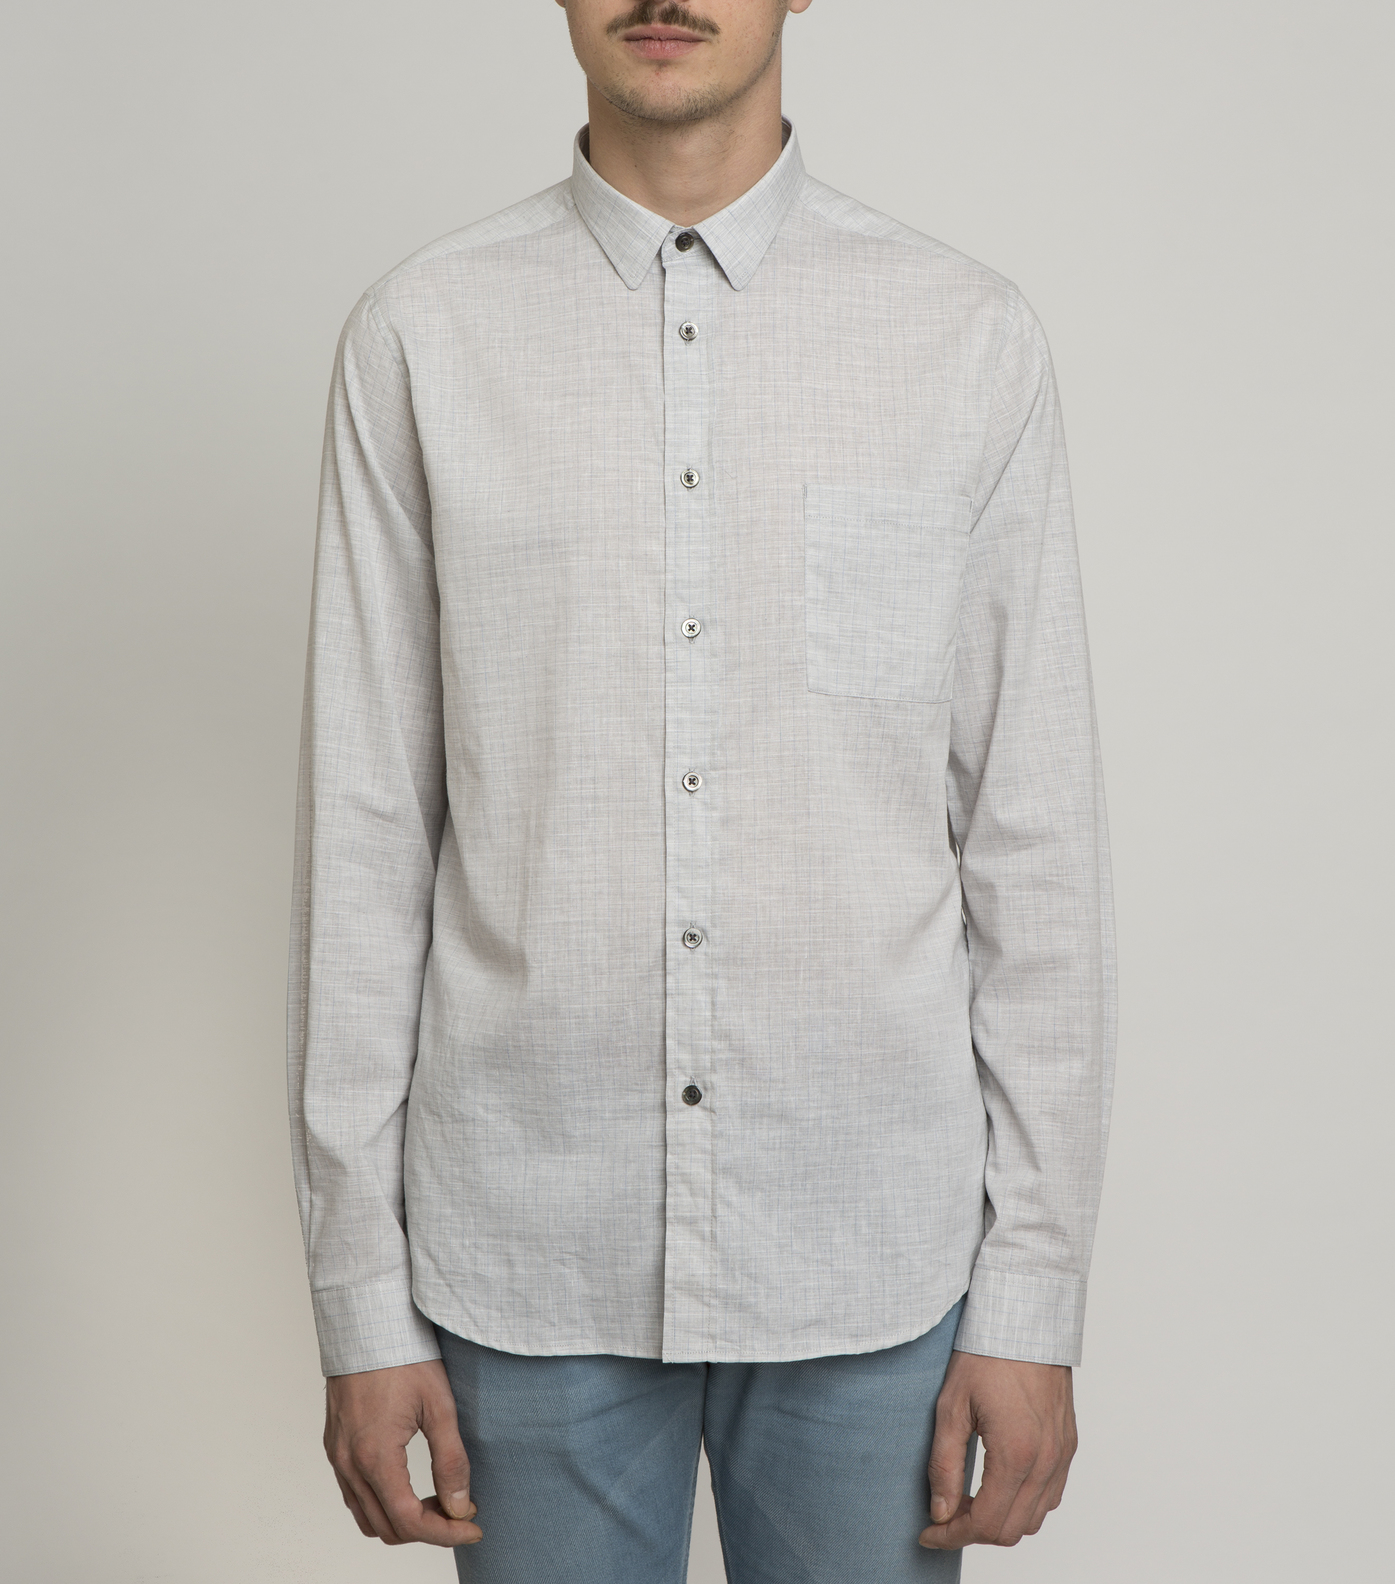 SHIRT ROSSEL-S - Grey checked